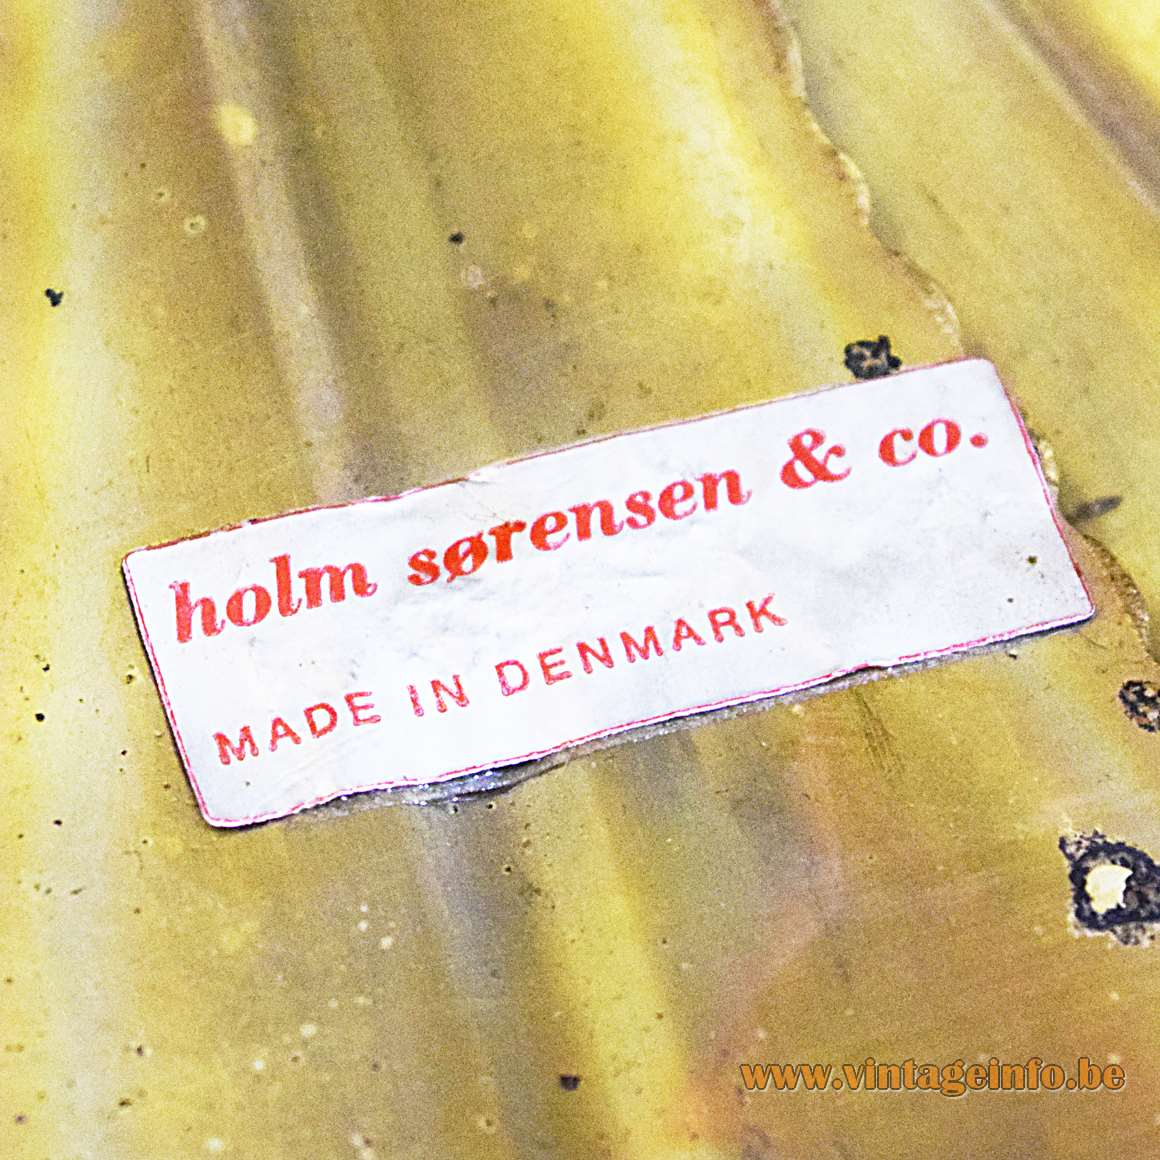 Svend Aage Holm Sørensen Pendant Light - label inside the lampshade